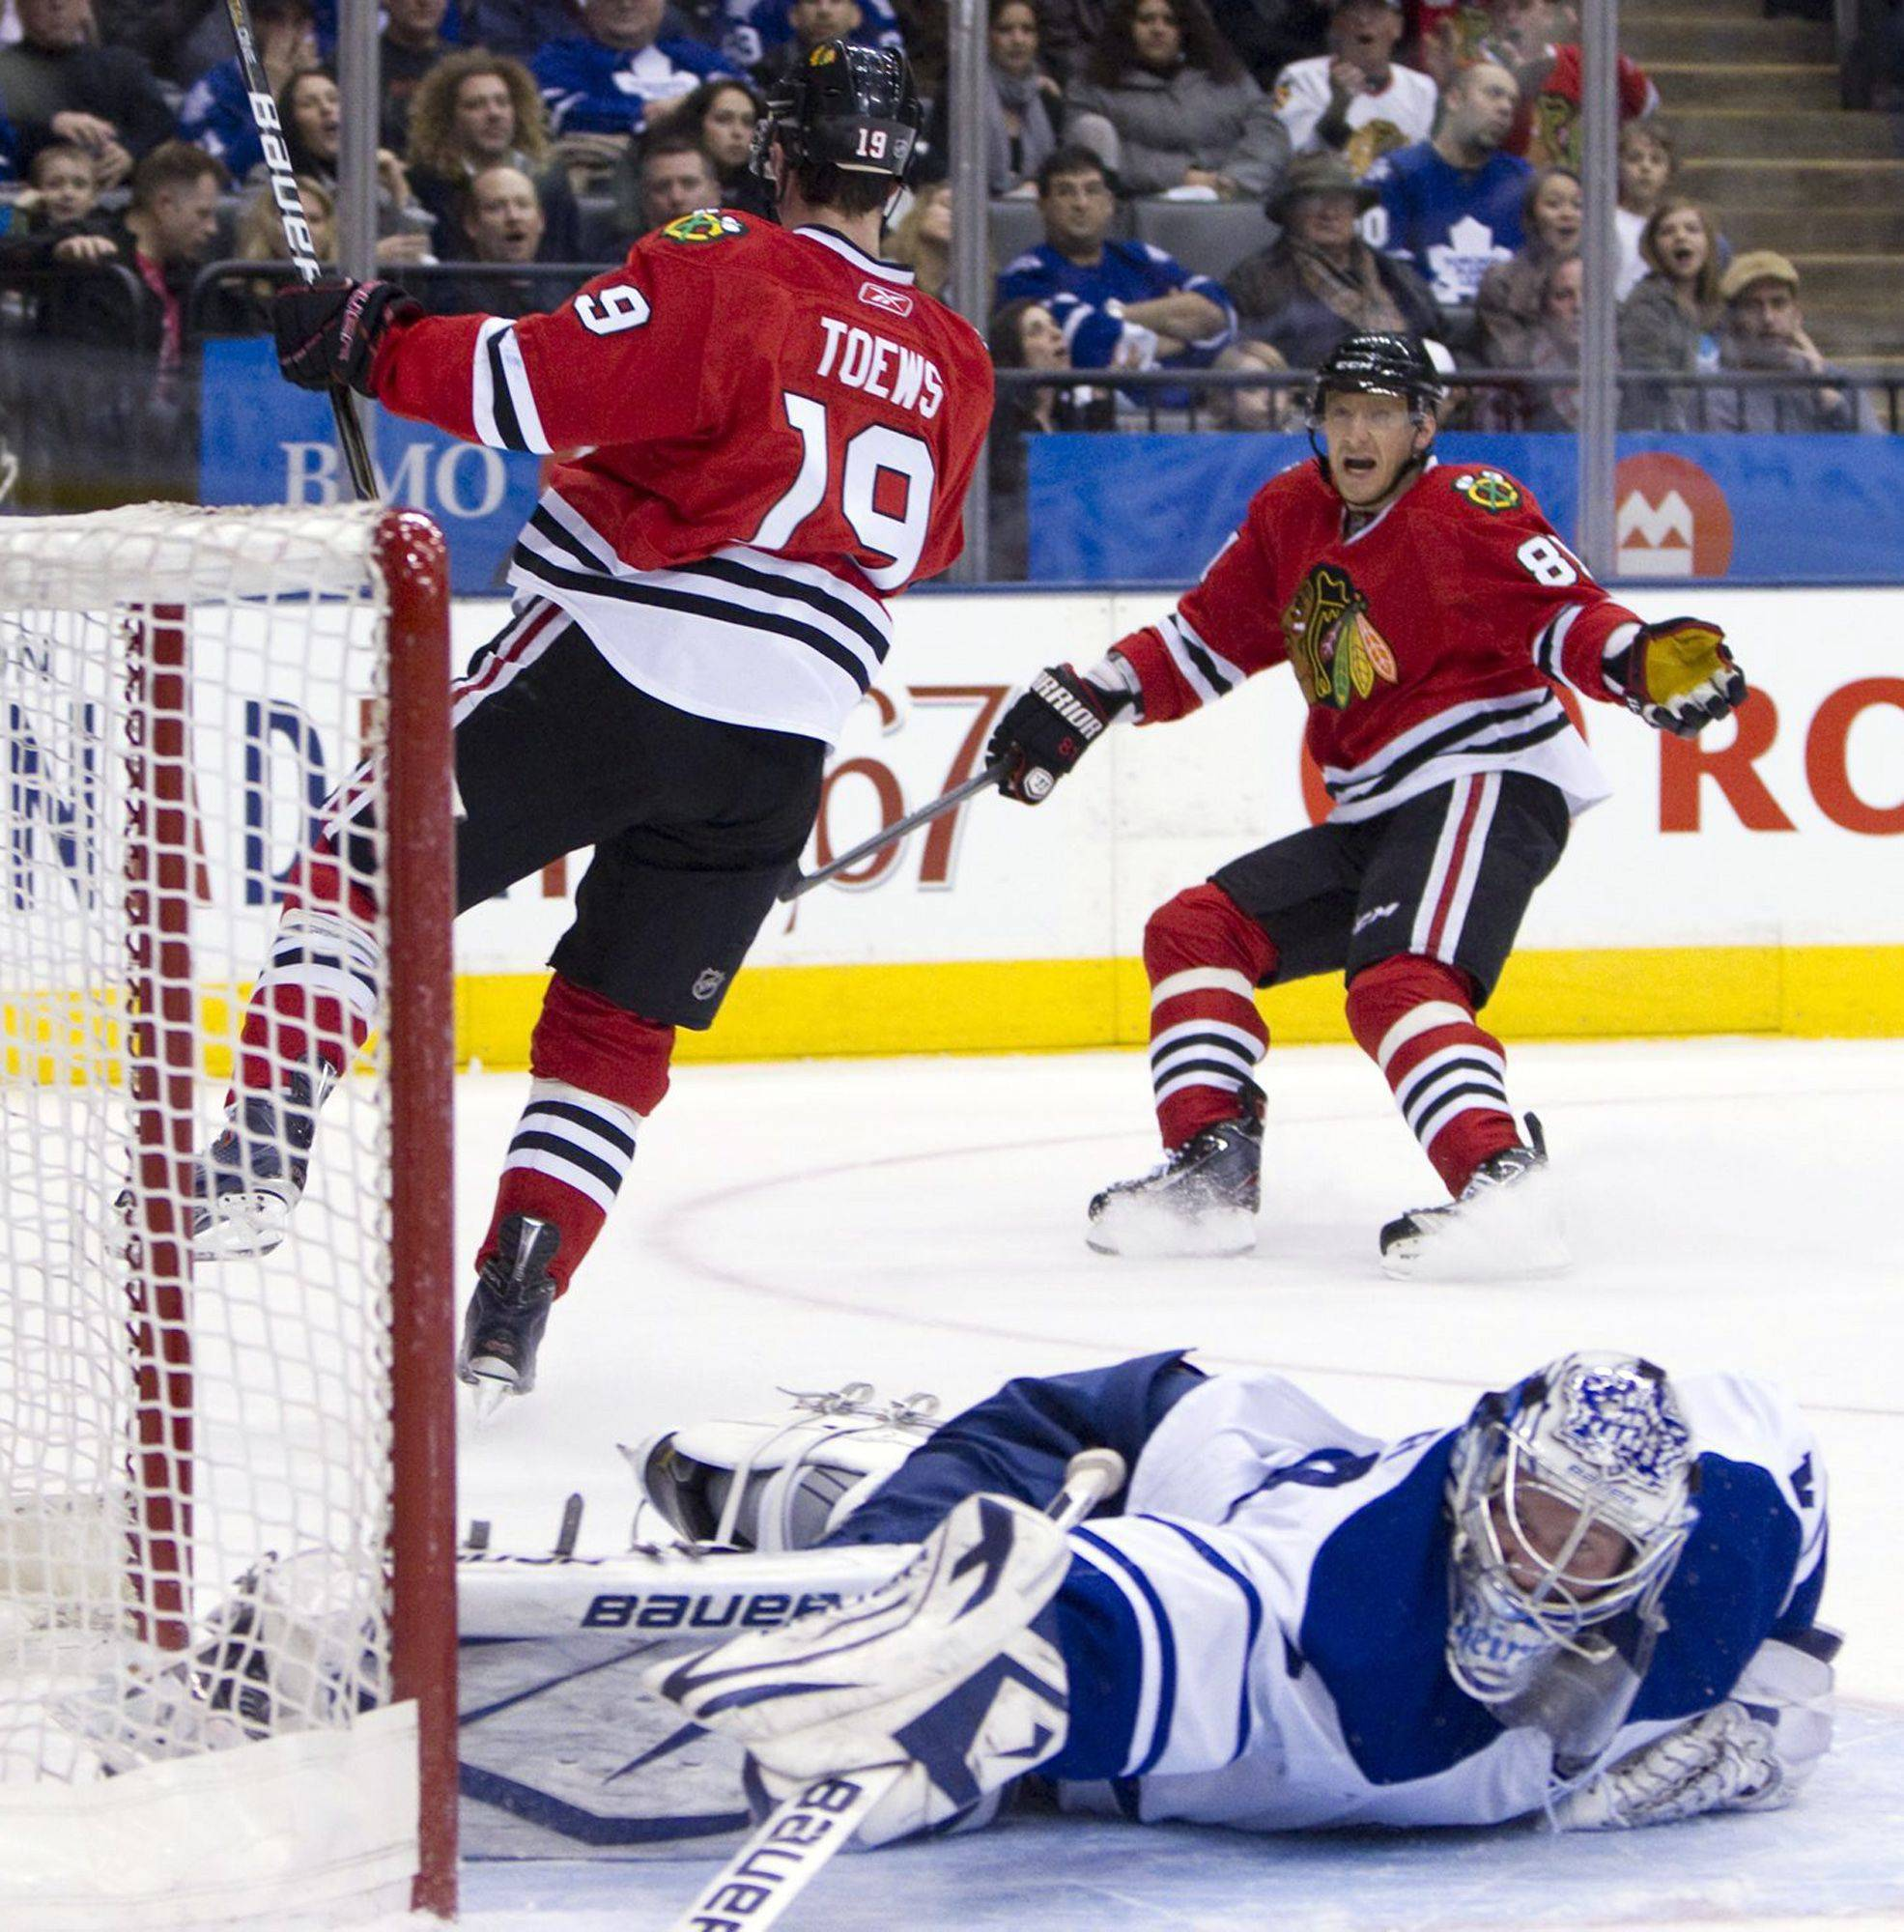 The Blackhawks' Jonathan Toews celebrates his first-period goal with teammate Marian Hossa in front of Toronto Maple Leafs goaltender James Reimer. The Hawks extended their winning streak to eight games.